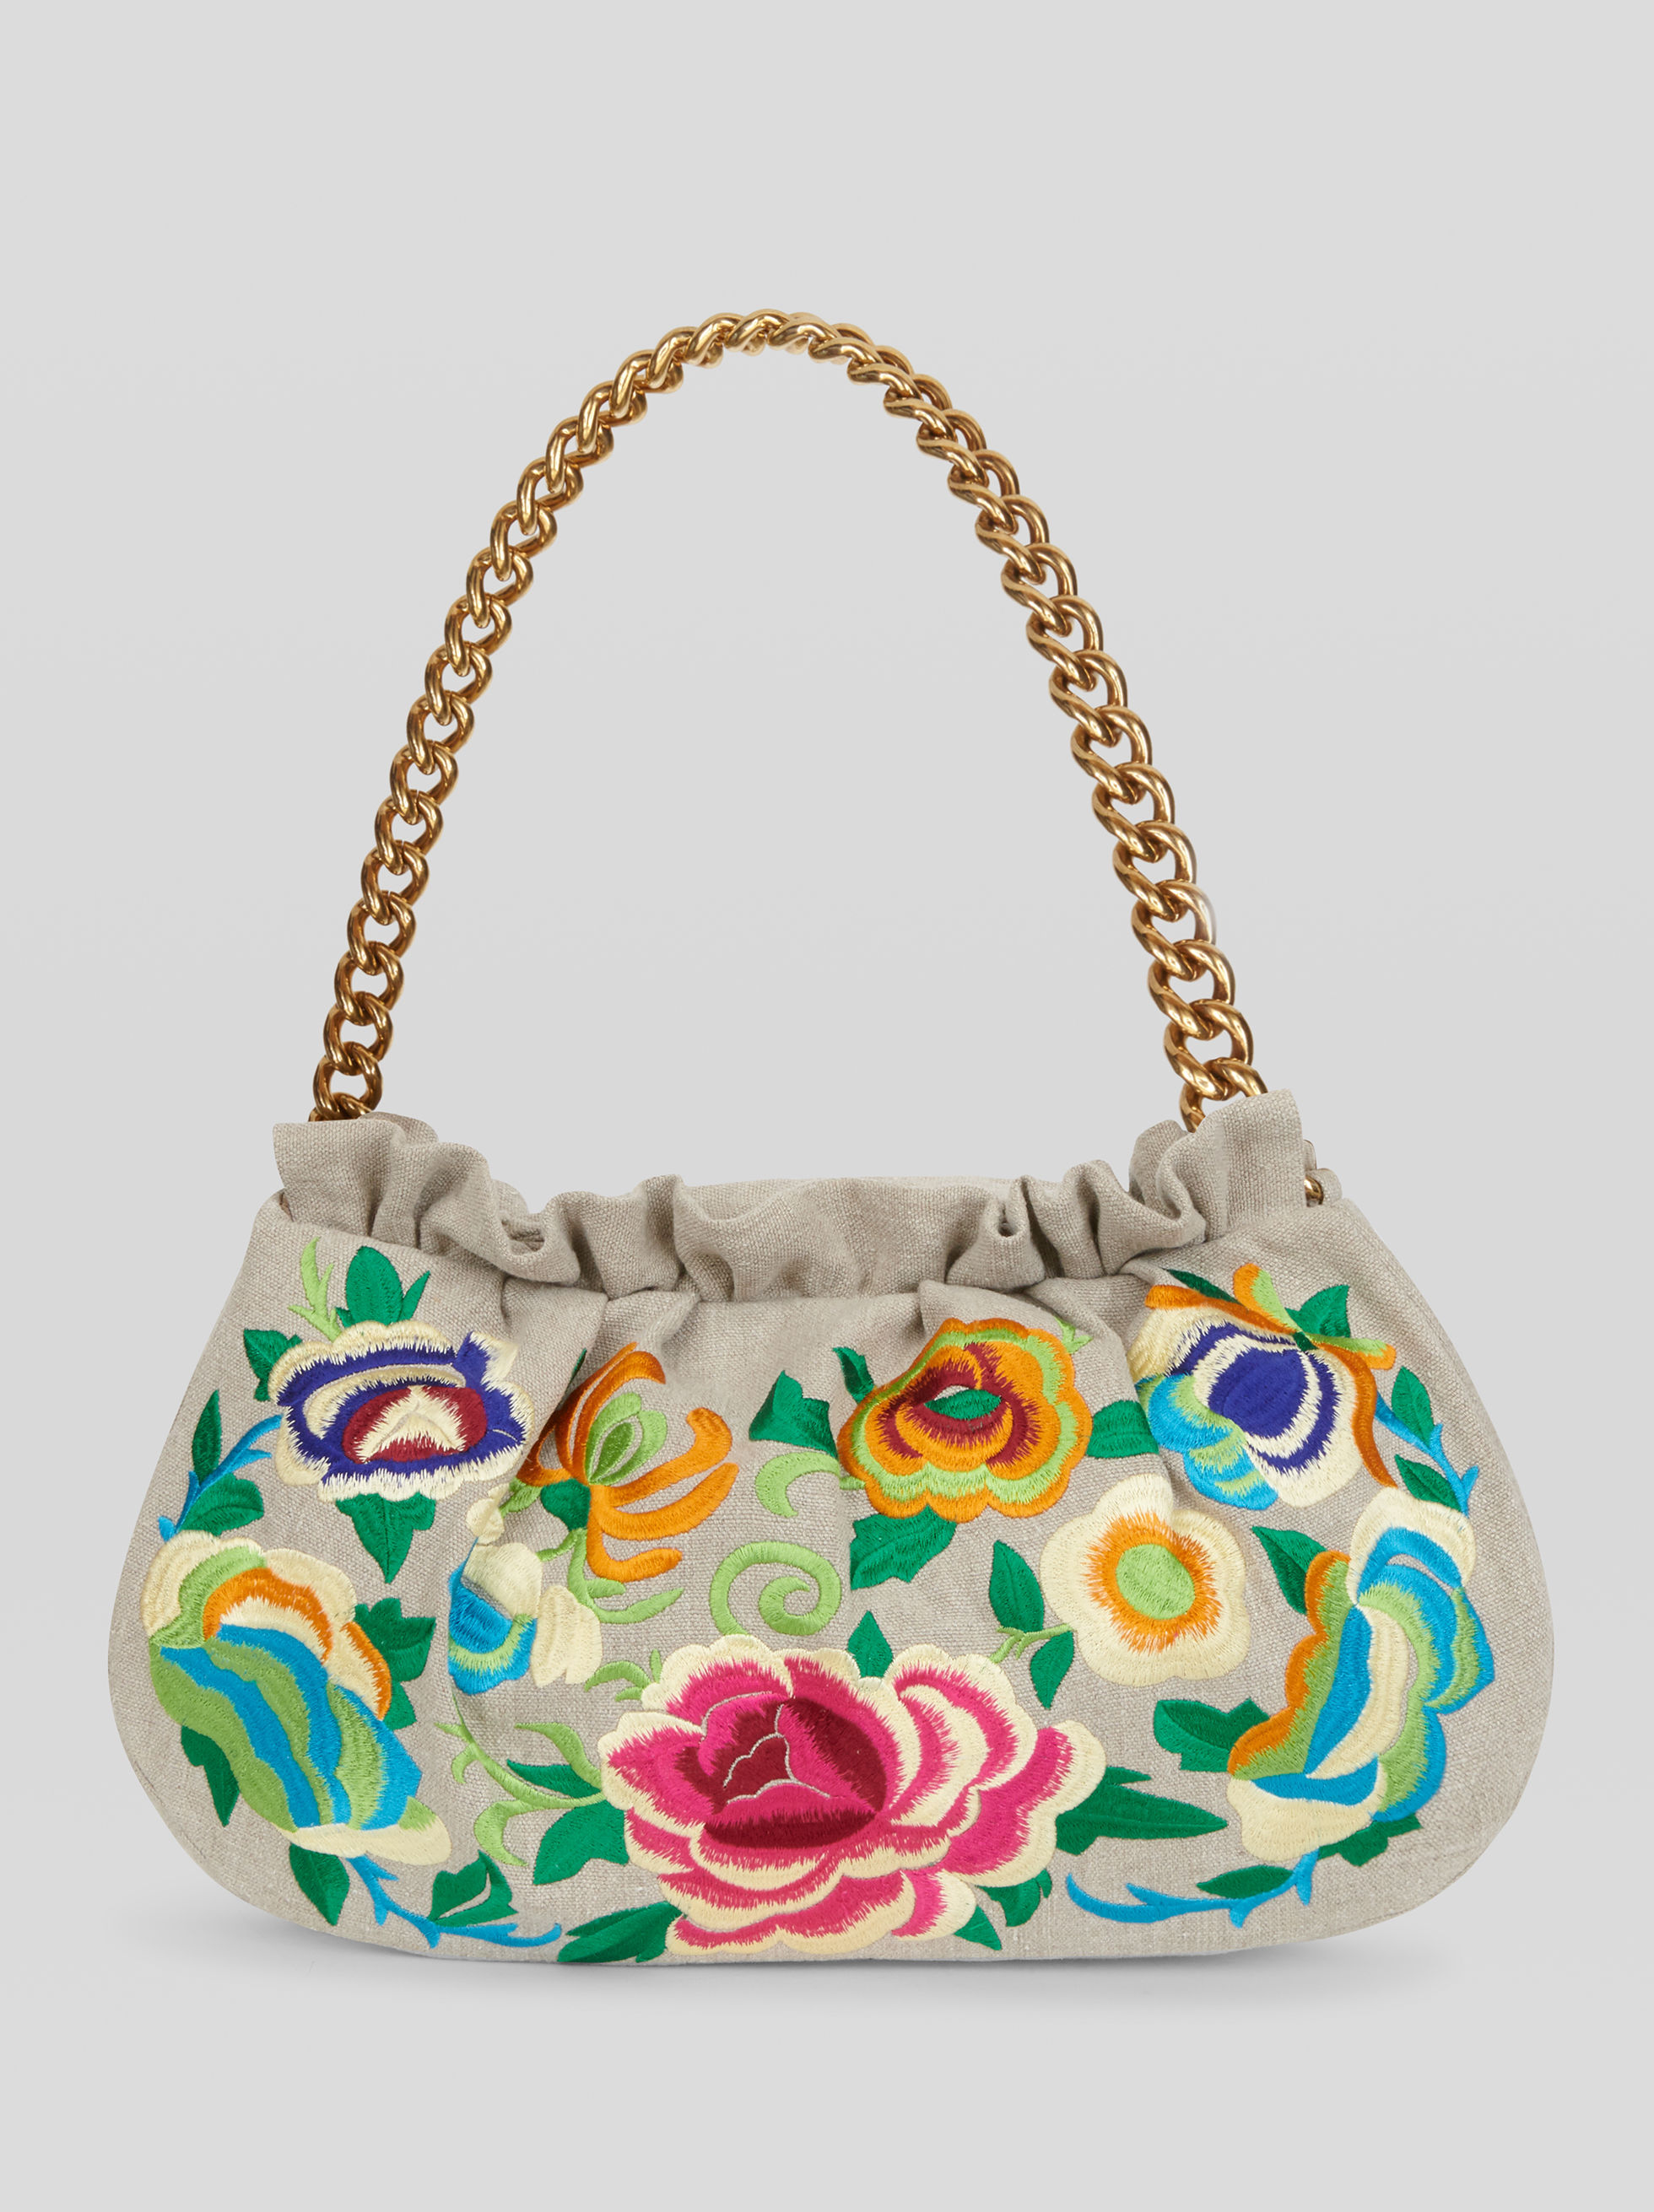 HANDBAG WITH FLORAL EMBROIDERY